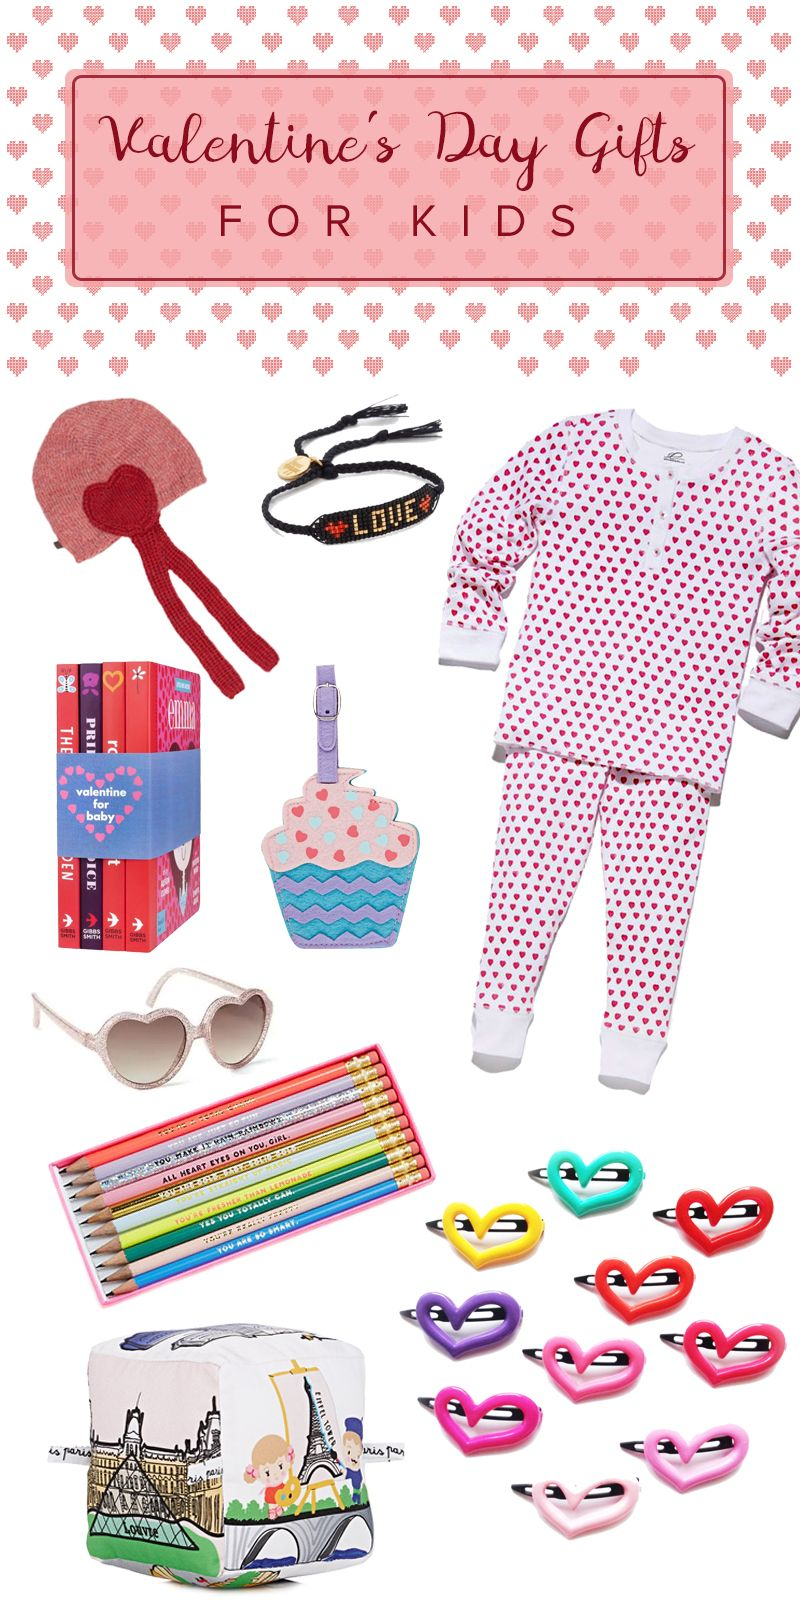 21 Sweet Valentine S Day Gifts For Kids Of All Ages Valentine Gifts For Kids Valentines For Kids Cute Valentines Day Gifts